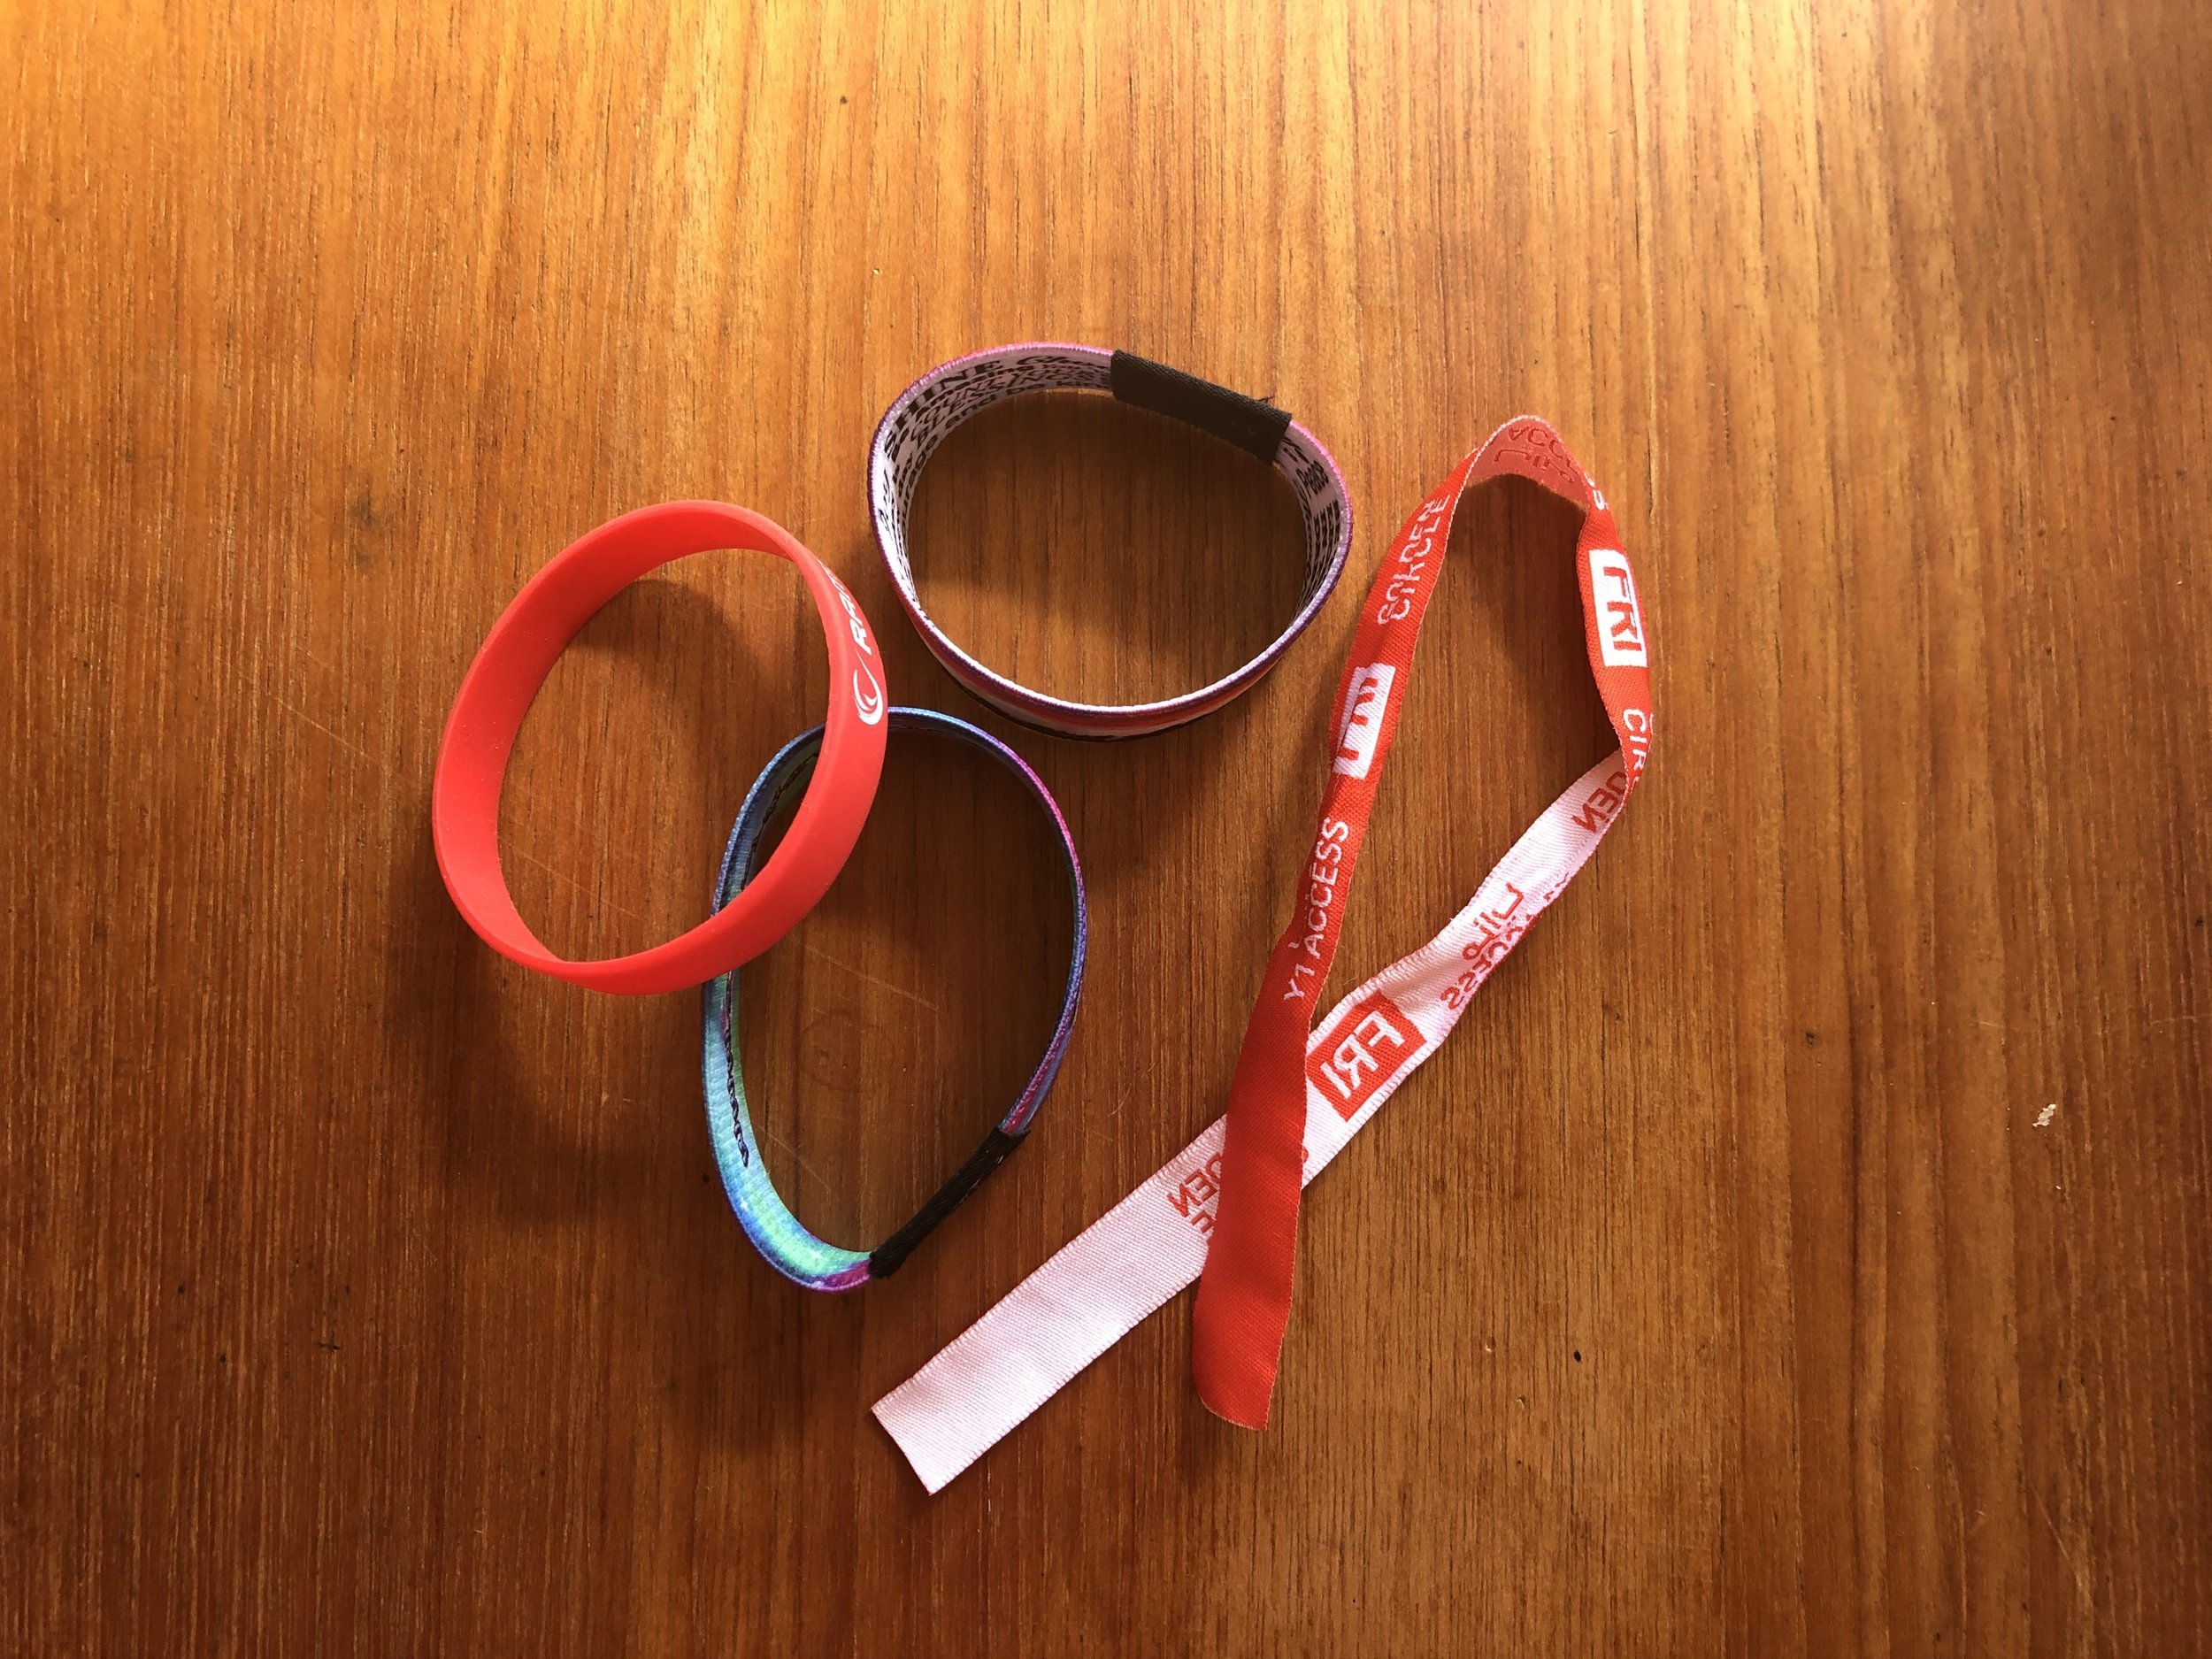 I requested wristband samples from various Alibaba suppliers and honed in on the style that would work best in order to achieve desired goals.